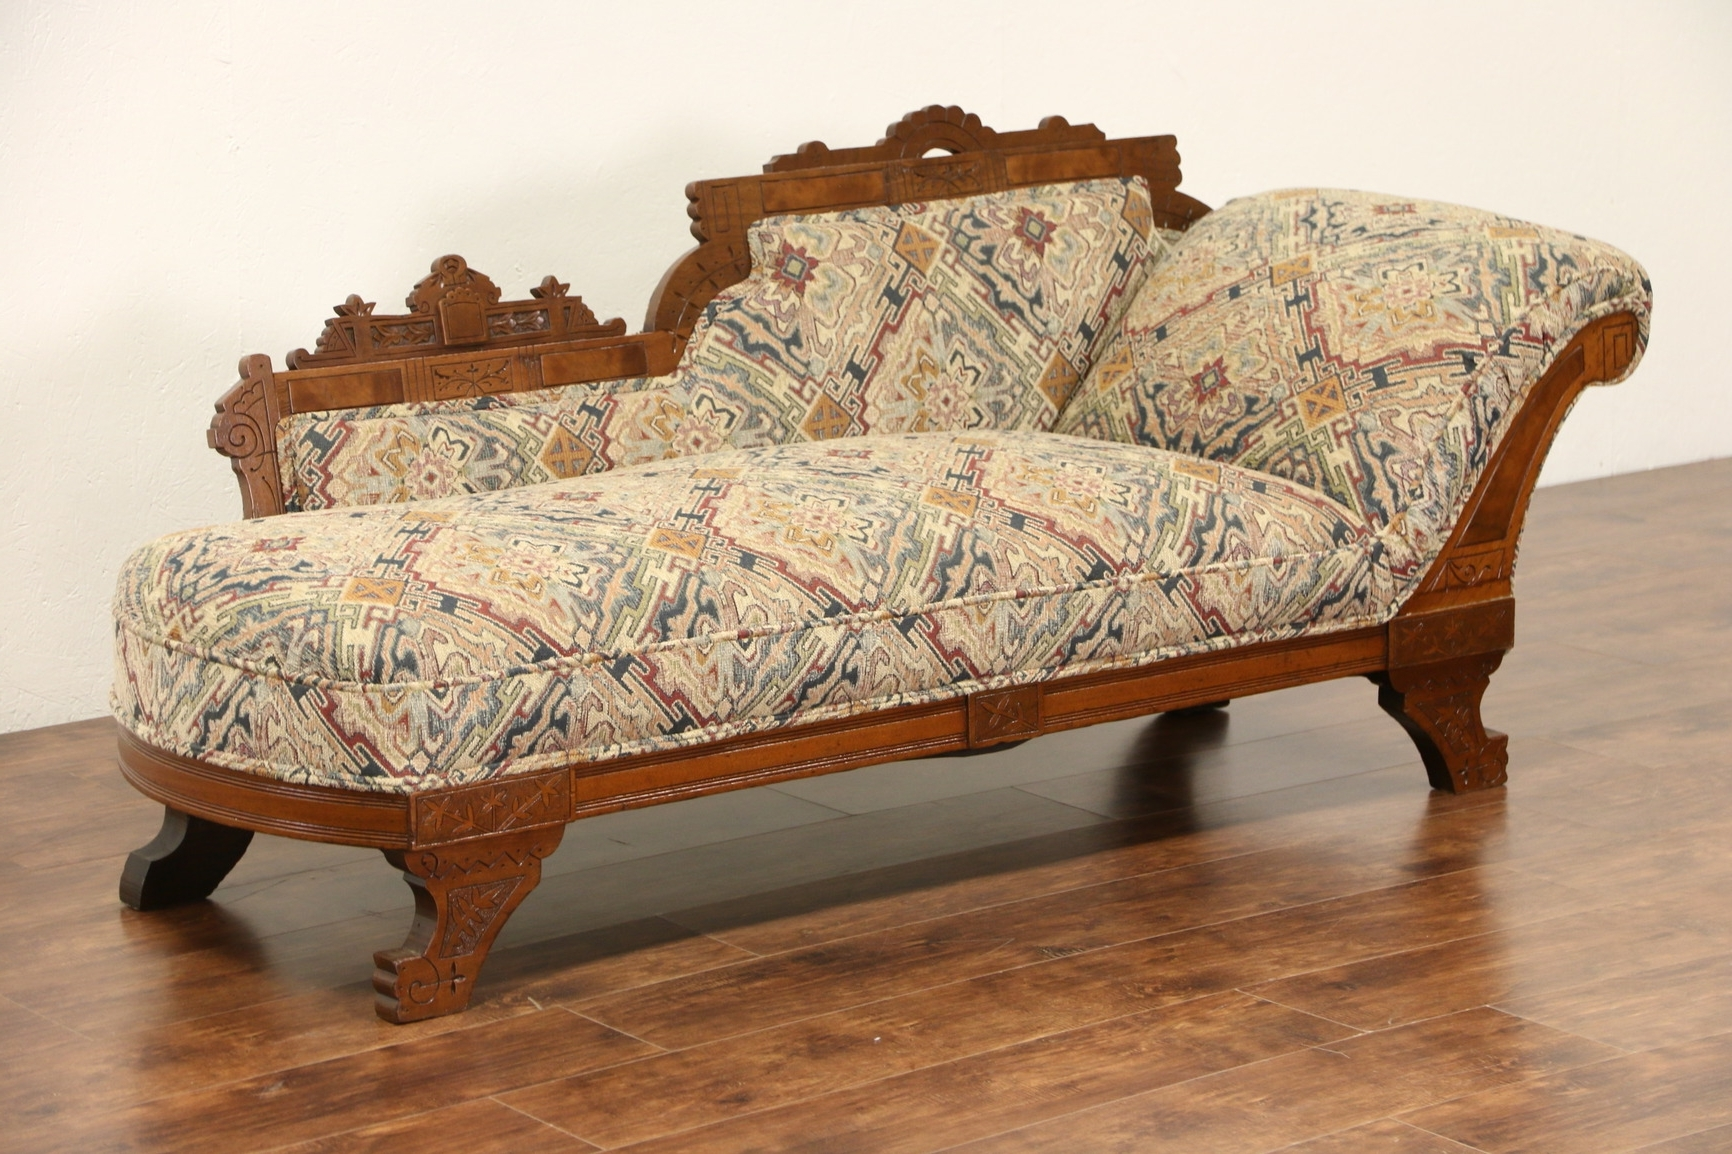 Antique Chaise Lounge Chairs Inside Current Sold – Victorian Eastlake 1880 Antique Chaise Lounge Or Fainting (View 6 of 15)